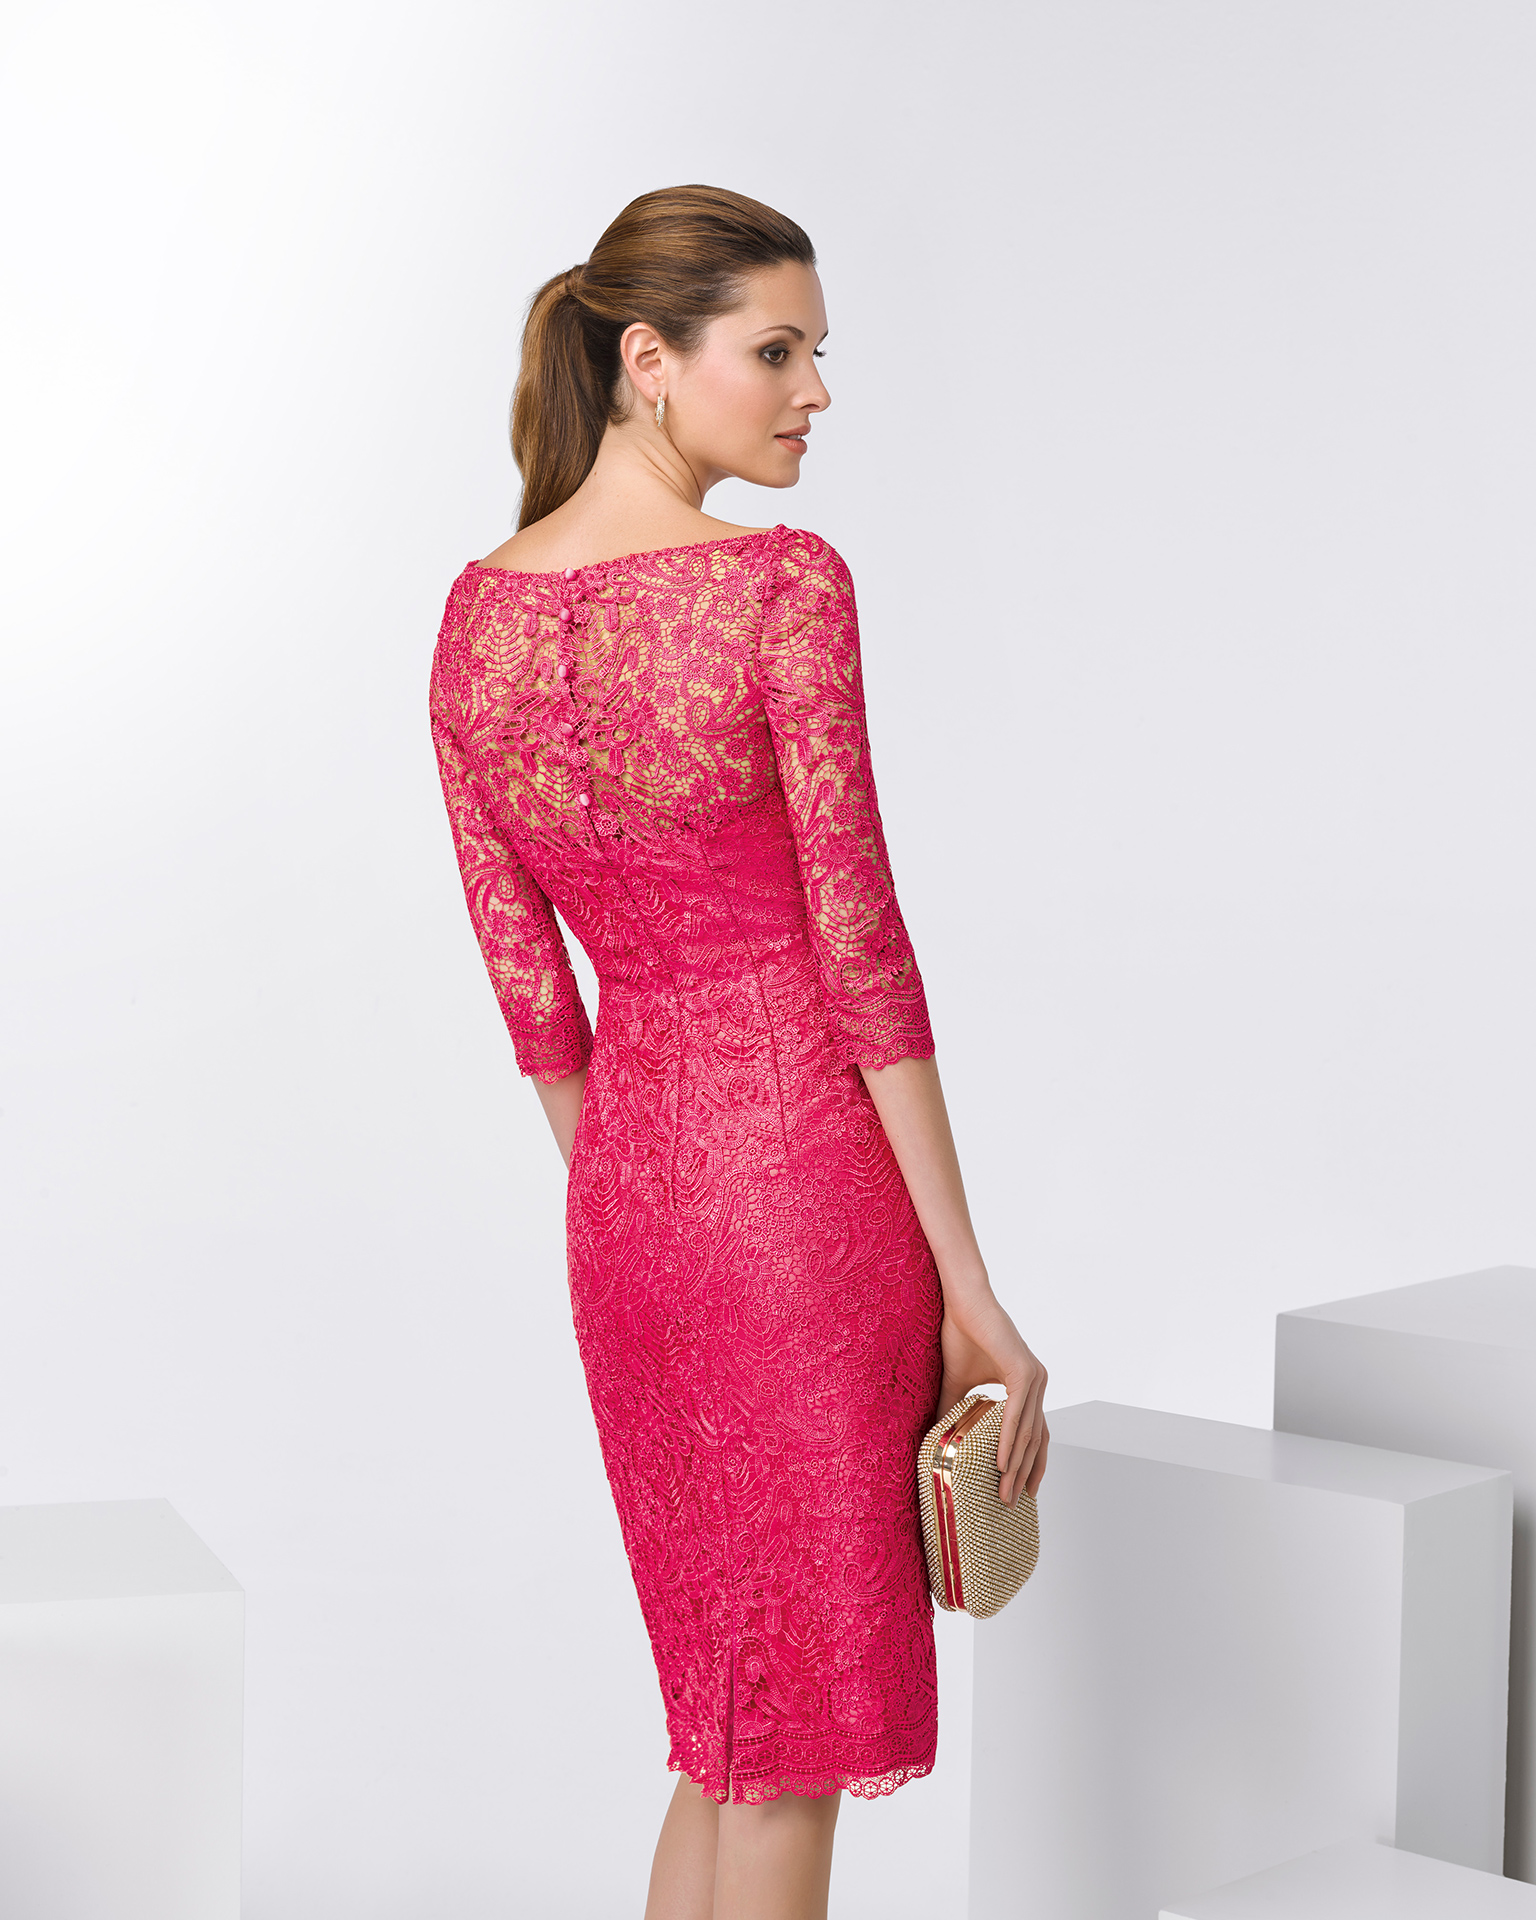 Short lace cocktail dress with three-quarter sleeves. Available in fuchsia, cobalt and silver. 2018 FIESTA AIRE BARCELONA Collection.